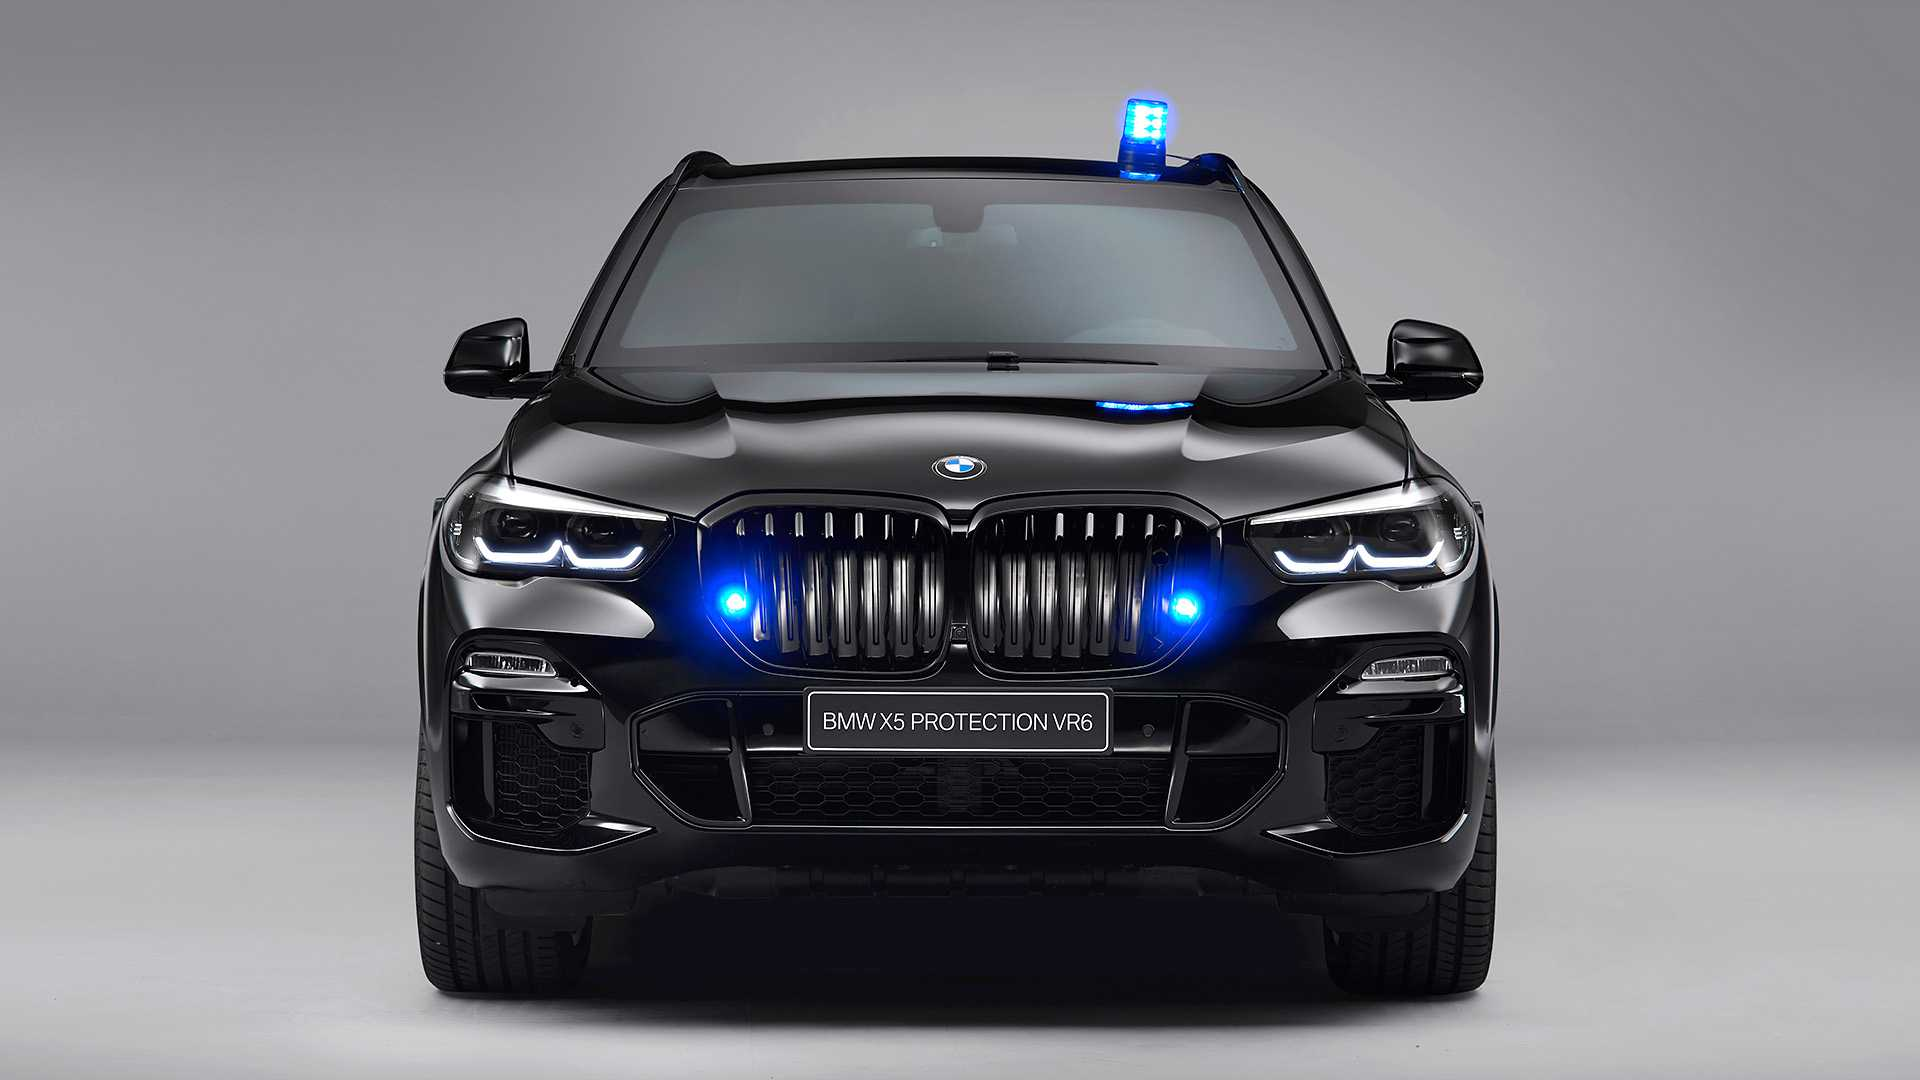 2020 BMW X5 Protection VR6 (Armored Vehicle) Front Wallpapers (7)